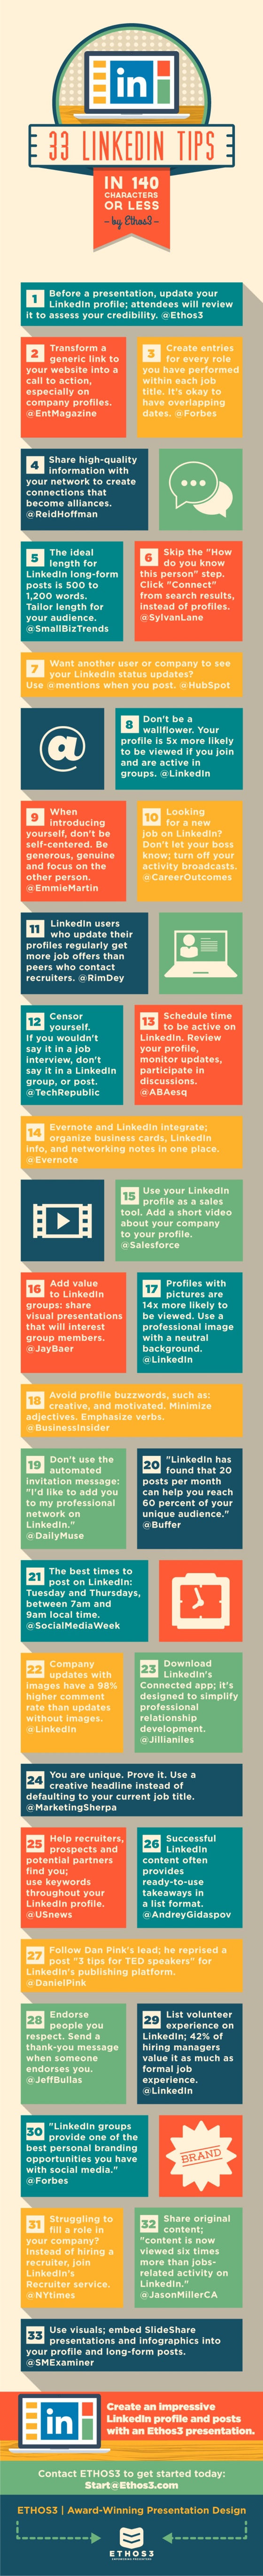 Tips That'll Help You Master LinkedIn